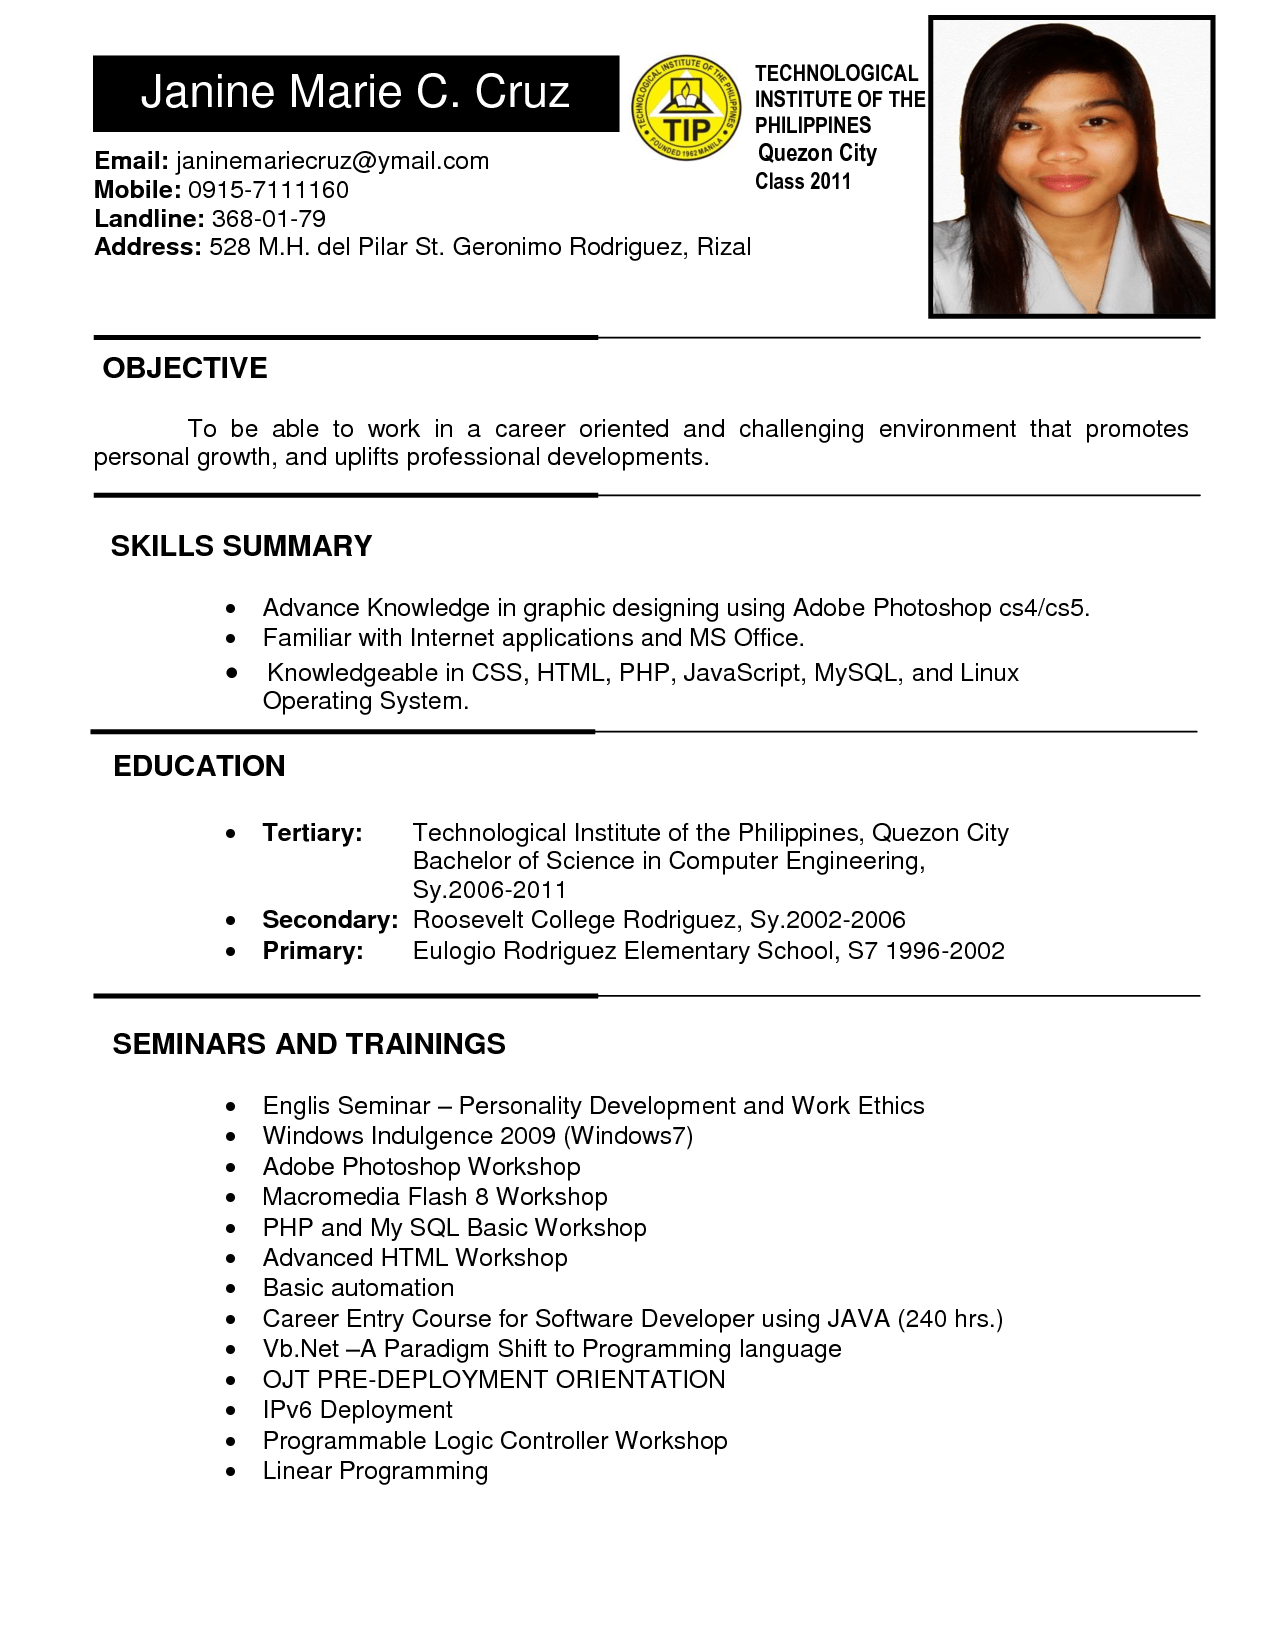 Resume Resume Format For Job Application For Freshers examples of resume for job application and free cv teachers httpwwwteachers resumescomau college format sample